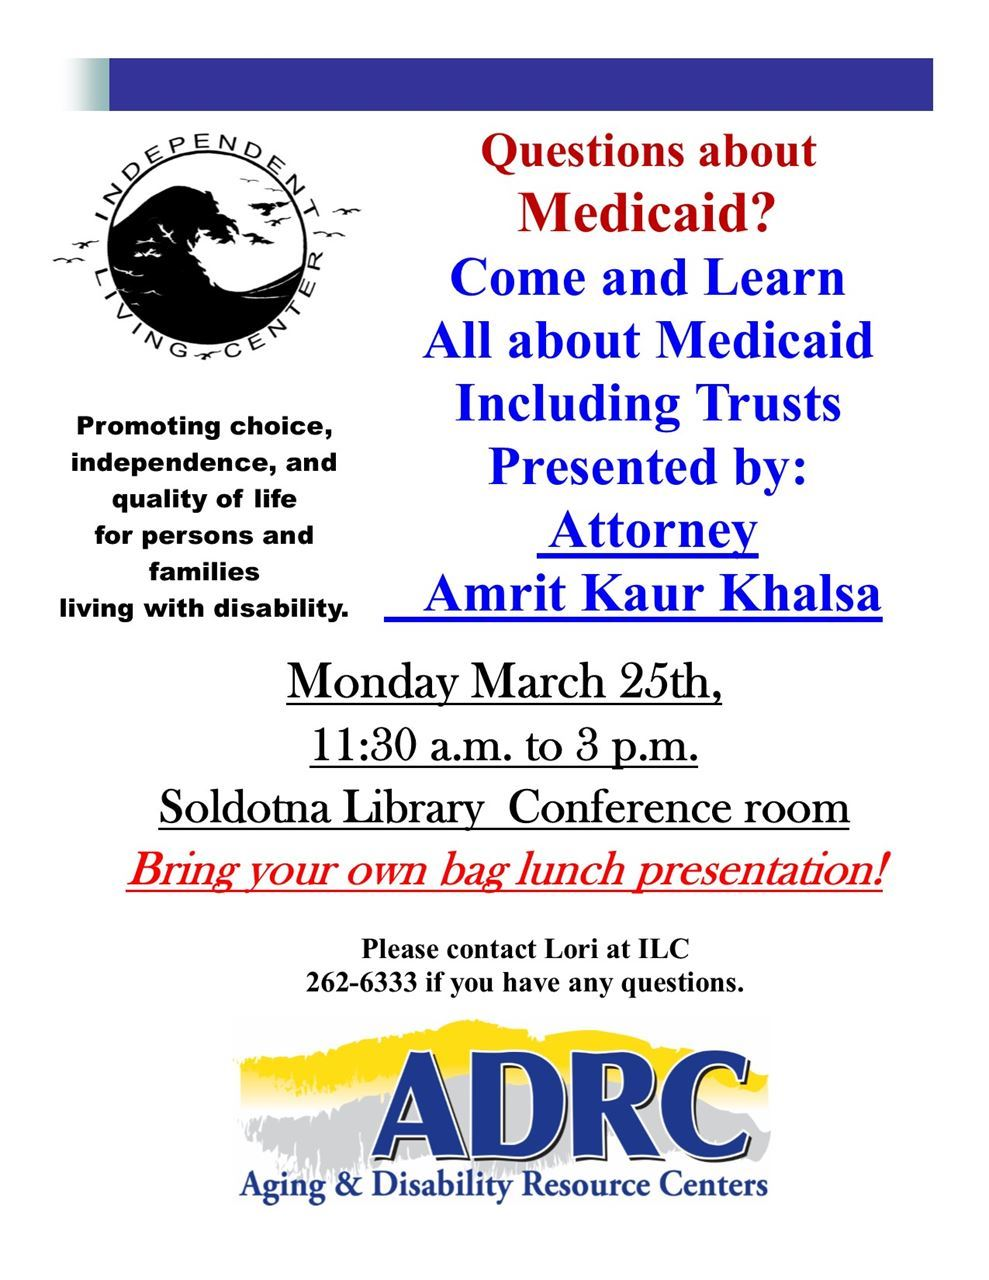 Learn about Medicaid Trusta presented by Attorney Amrit Kaur Khalsa. March 25th, 130 to 300 Soldotna Library Conference room